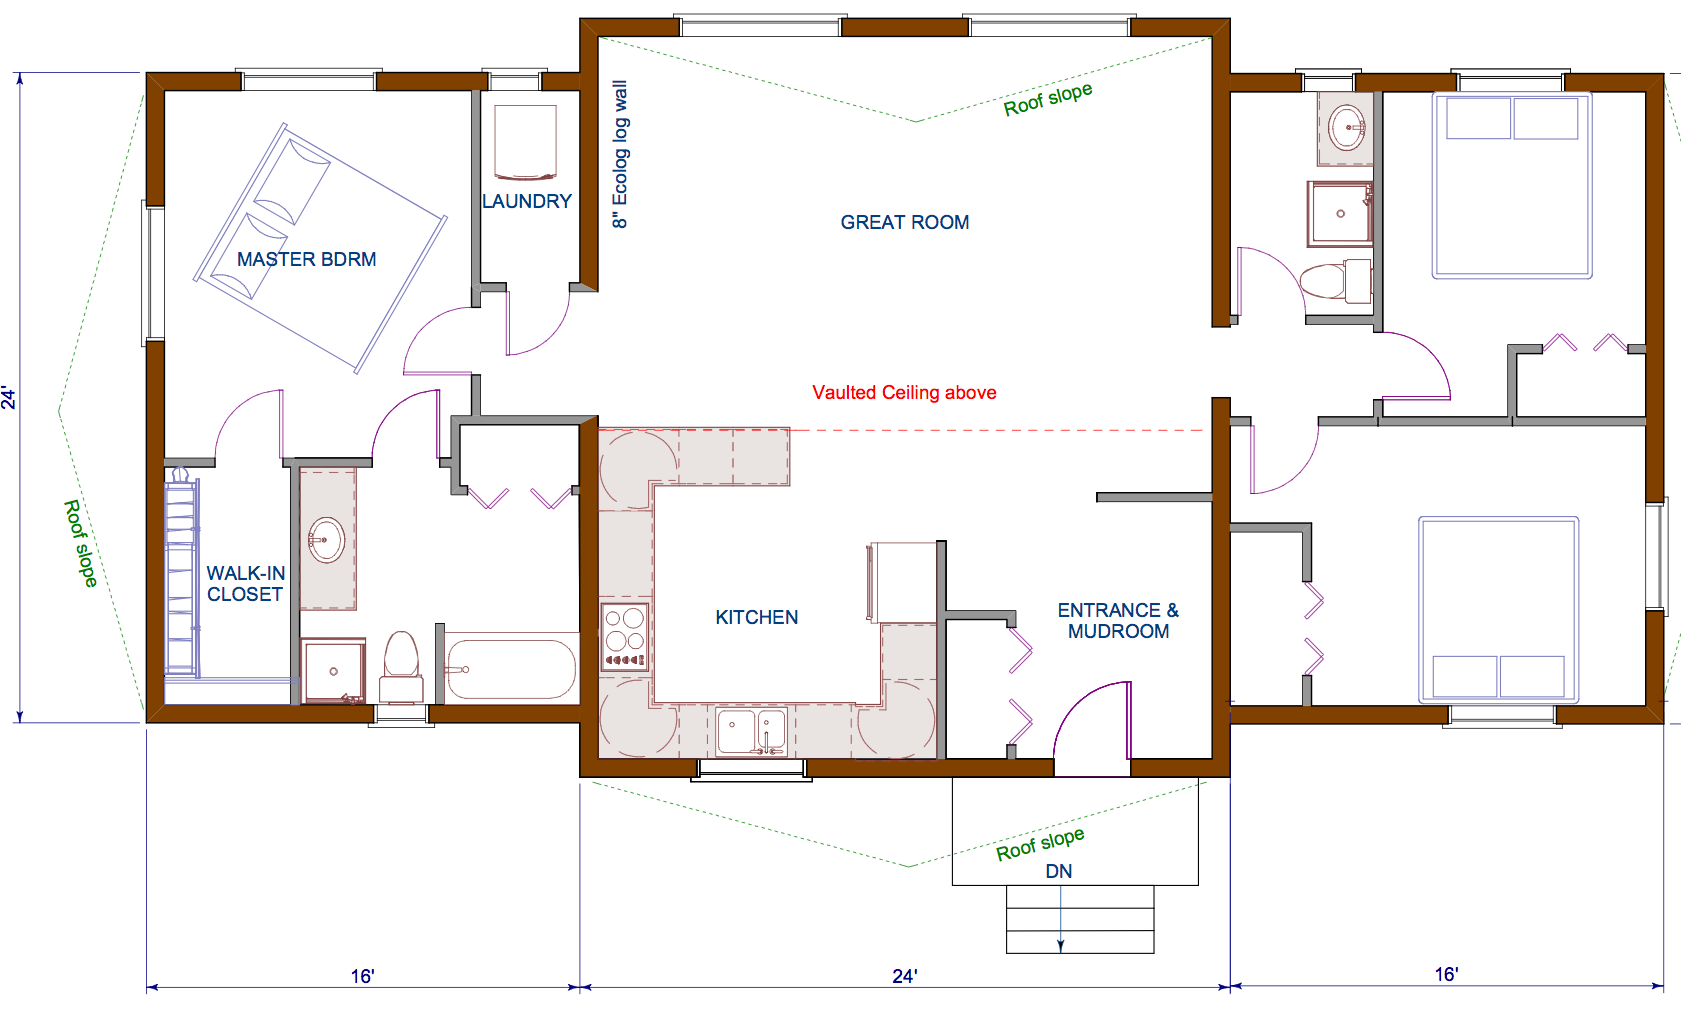 21 simple ranch floor plans open concept ideas photo House plans single level